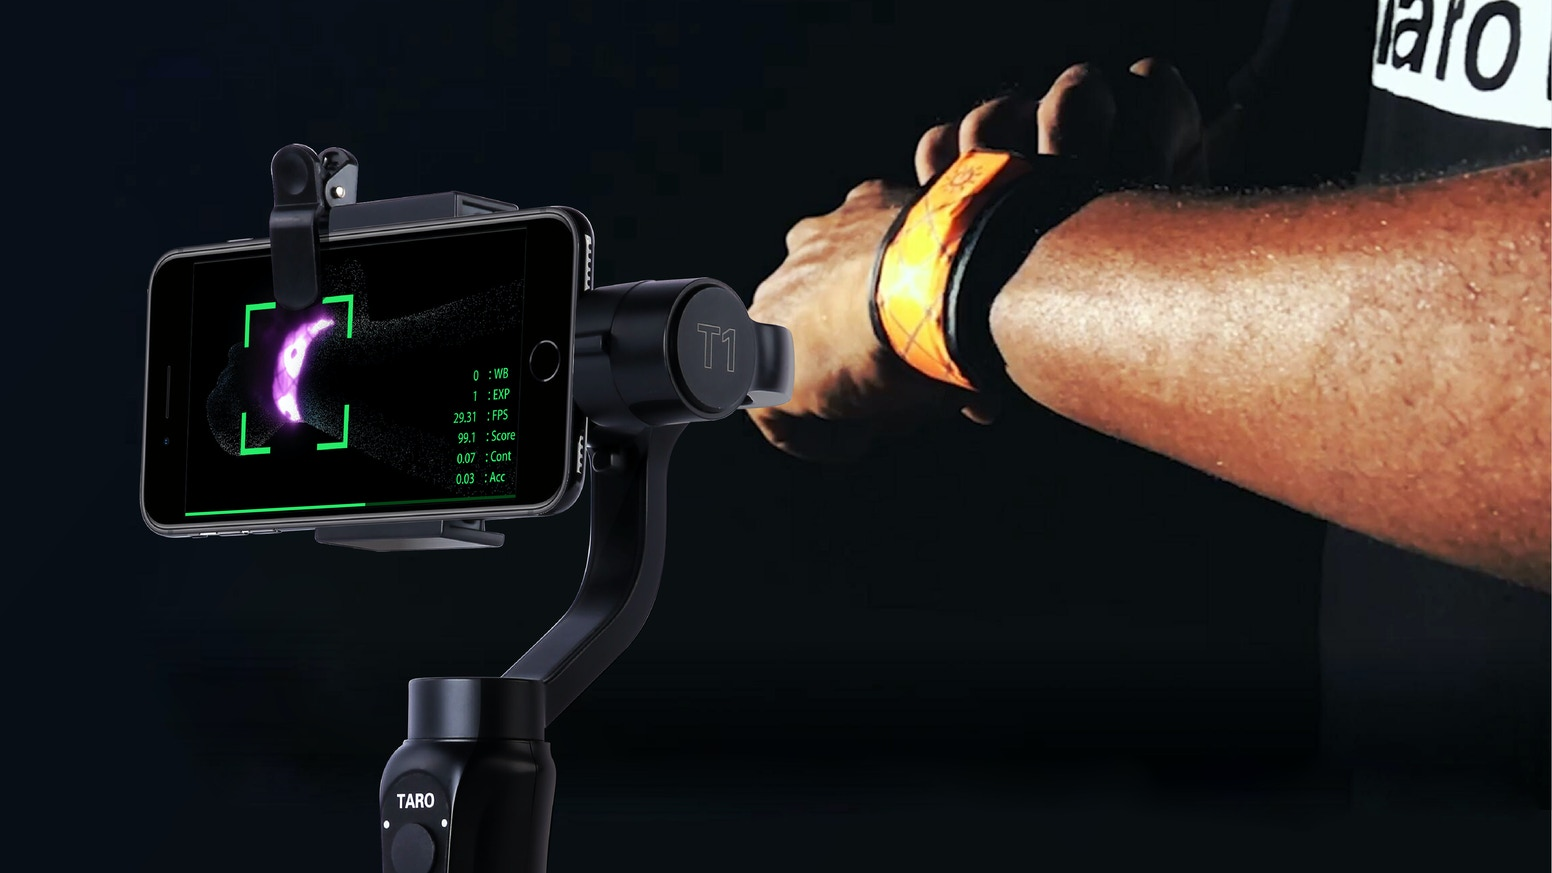 A ROBOT that operates your camera just like a real CAMERAMAN, and upgrade your existing stabilizer